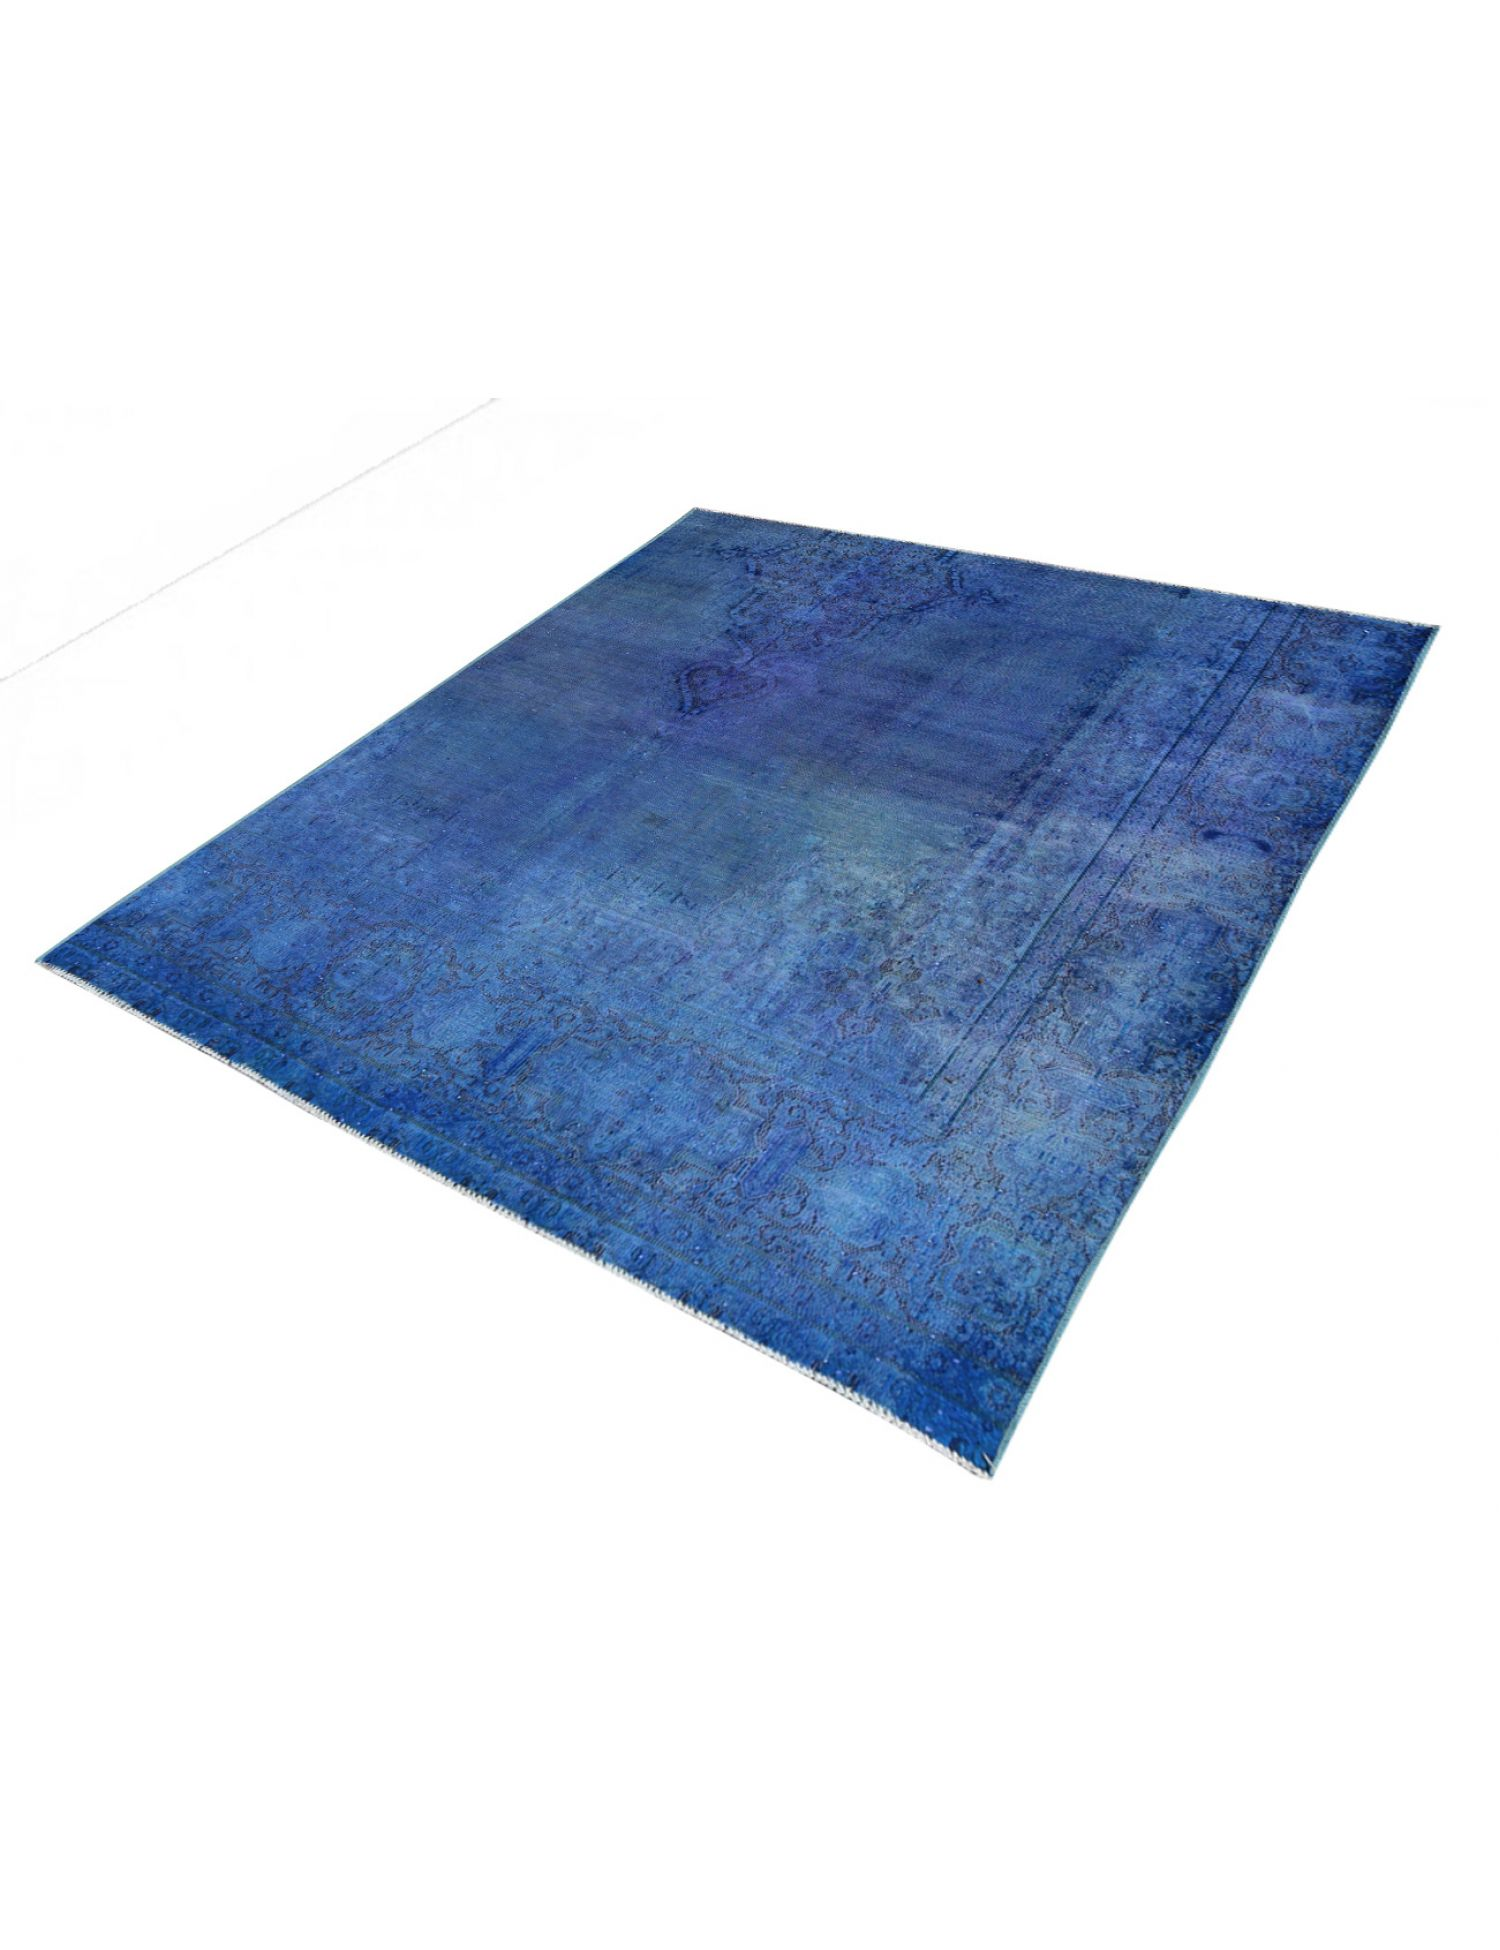 Vintage Carpet  blue <br/>204 x 164 cm